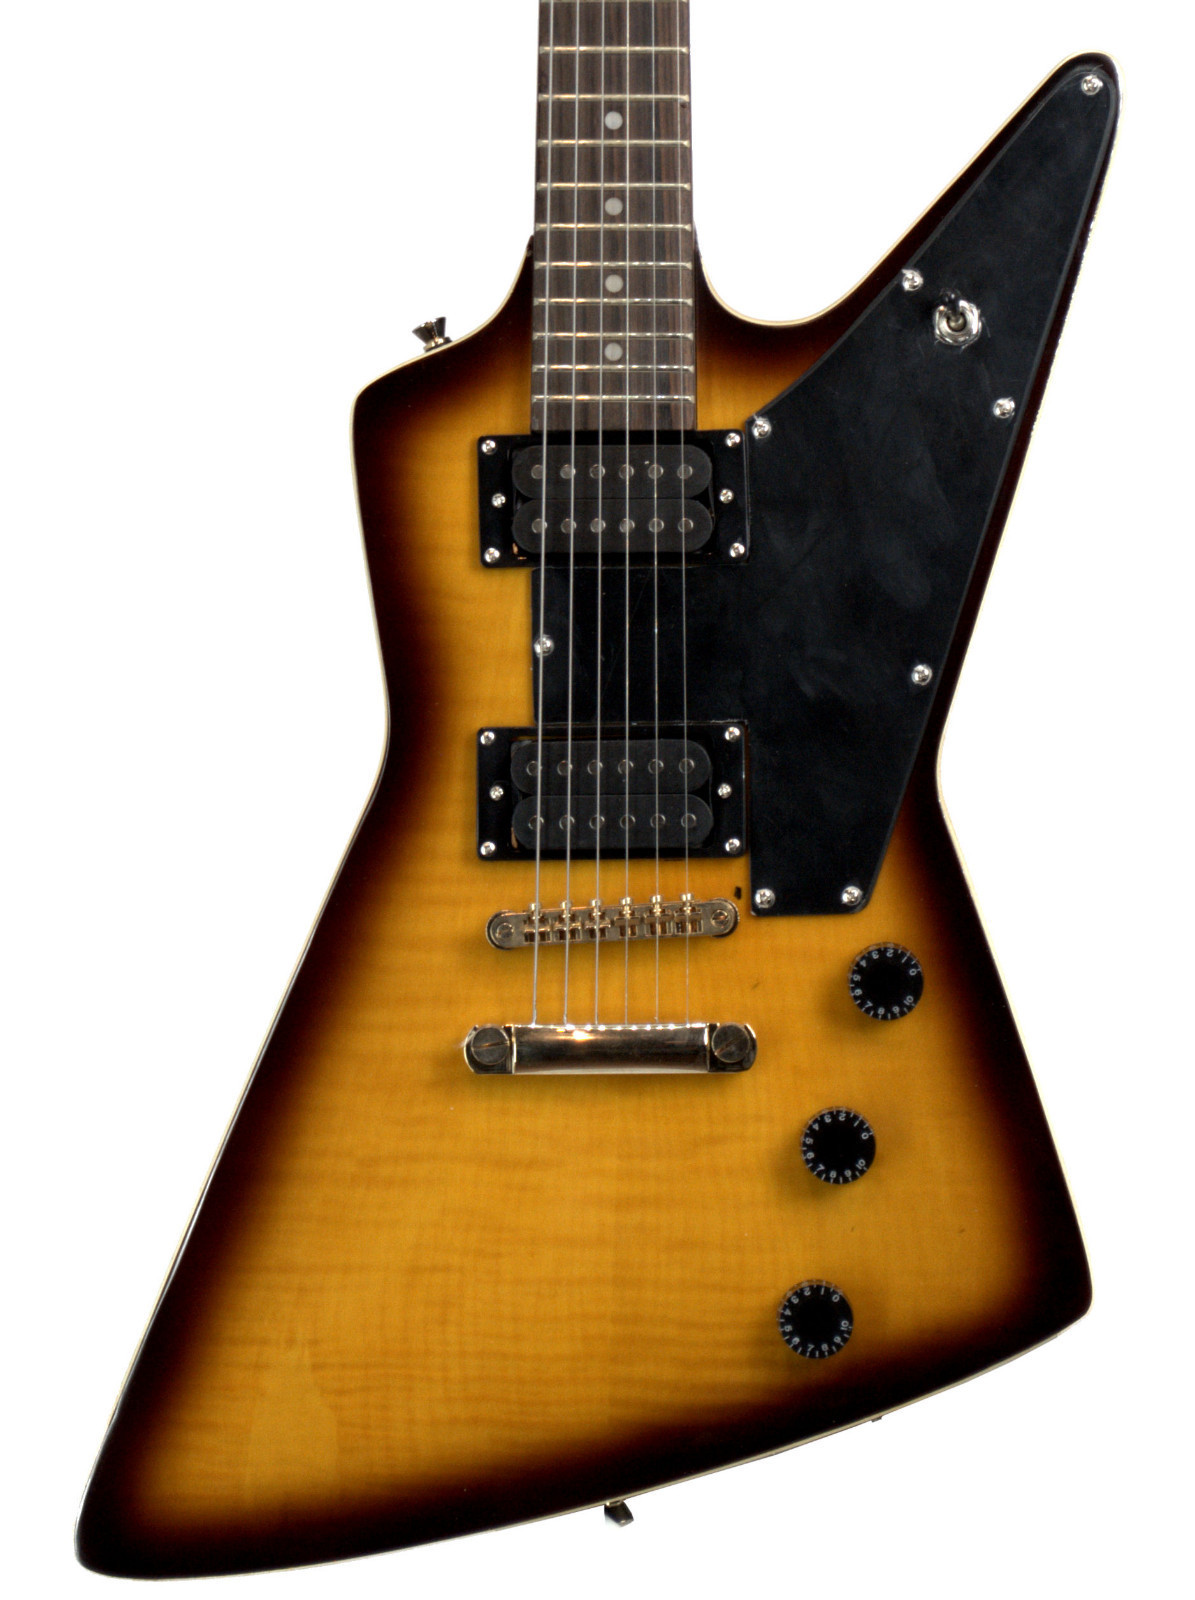 Explorer Style Guitar : fishbone fexpg 100 ts explorer style solid body electric guitar music express canada online ~ Russianpoet.info Haus und Dekorationen